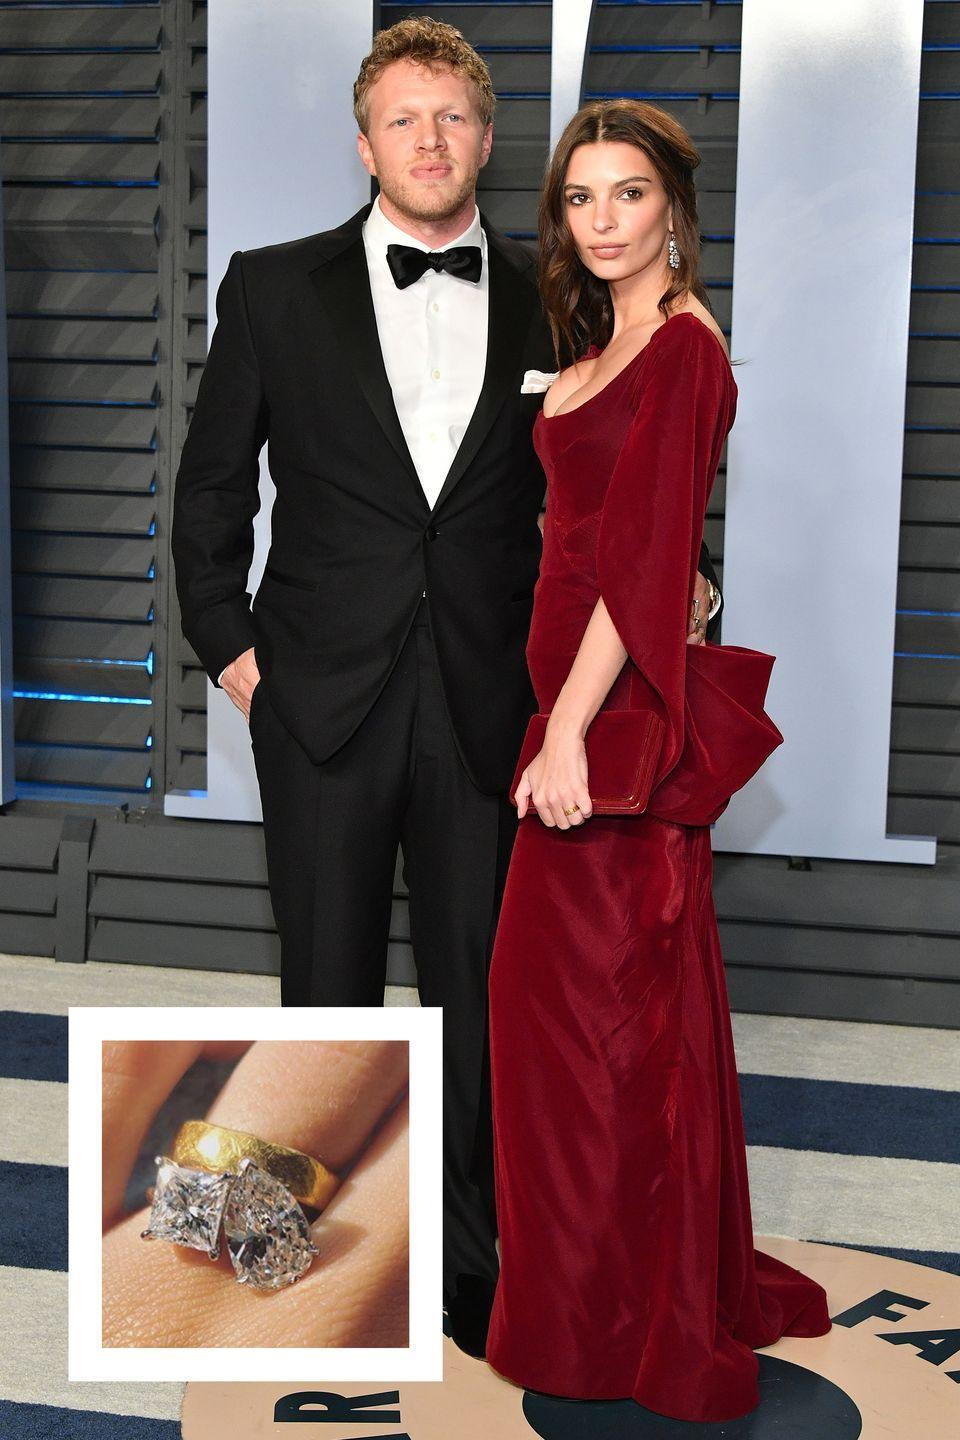 """<p>Months after her surprise wedding to Sebastian Bear-McClard, the model showed off her <a href=""""https://www.instagram.com/p/BlHSi5yltVP/?taken-by=emrata"""" rel=""""nofollow noopener"""" target=""""_blank"""" data-ylk=""""slk:gorgeous engagement ring on Instagram."""" class=""""link rapid-noclick-resp"""">gorgeous engagement ring on Instagram. </a>The unique design appears to be a two-carat princess cut diamond next to a three-carat pear shaped diamond, according to Kathryn Money of Brilliant Earth. The ring cost approximately between $50,000 and $90,000, <a href=""""https://pagesix.com/2018/07/12/emily-ratajkowski-debuts-massive-engagement-ring/"""" rel=""""nofollow noopener"""" target=""""_blank"""" data-ylk=""""slk:Page Six reports."""" class=""""link rapid-noclick-resp""""><em>Page Six </em>reports.</a></p>"""